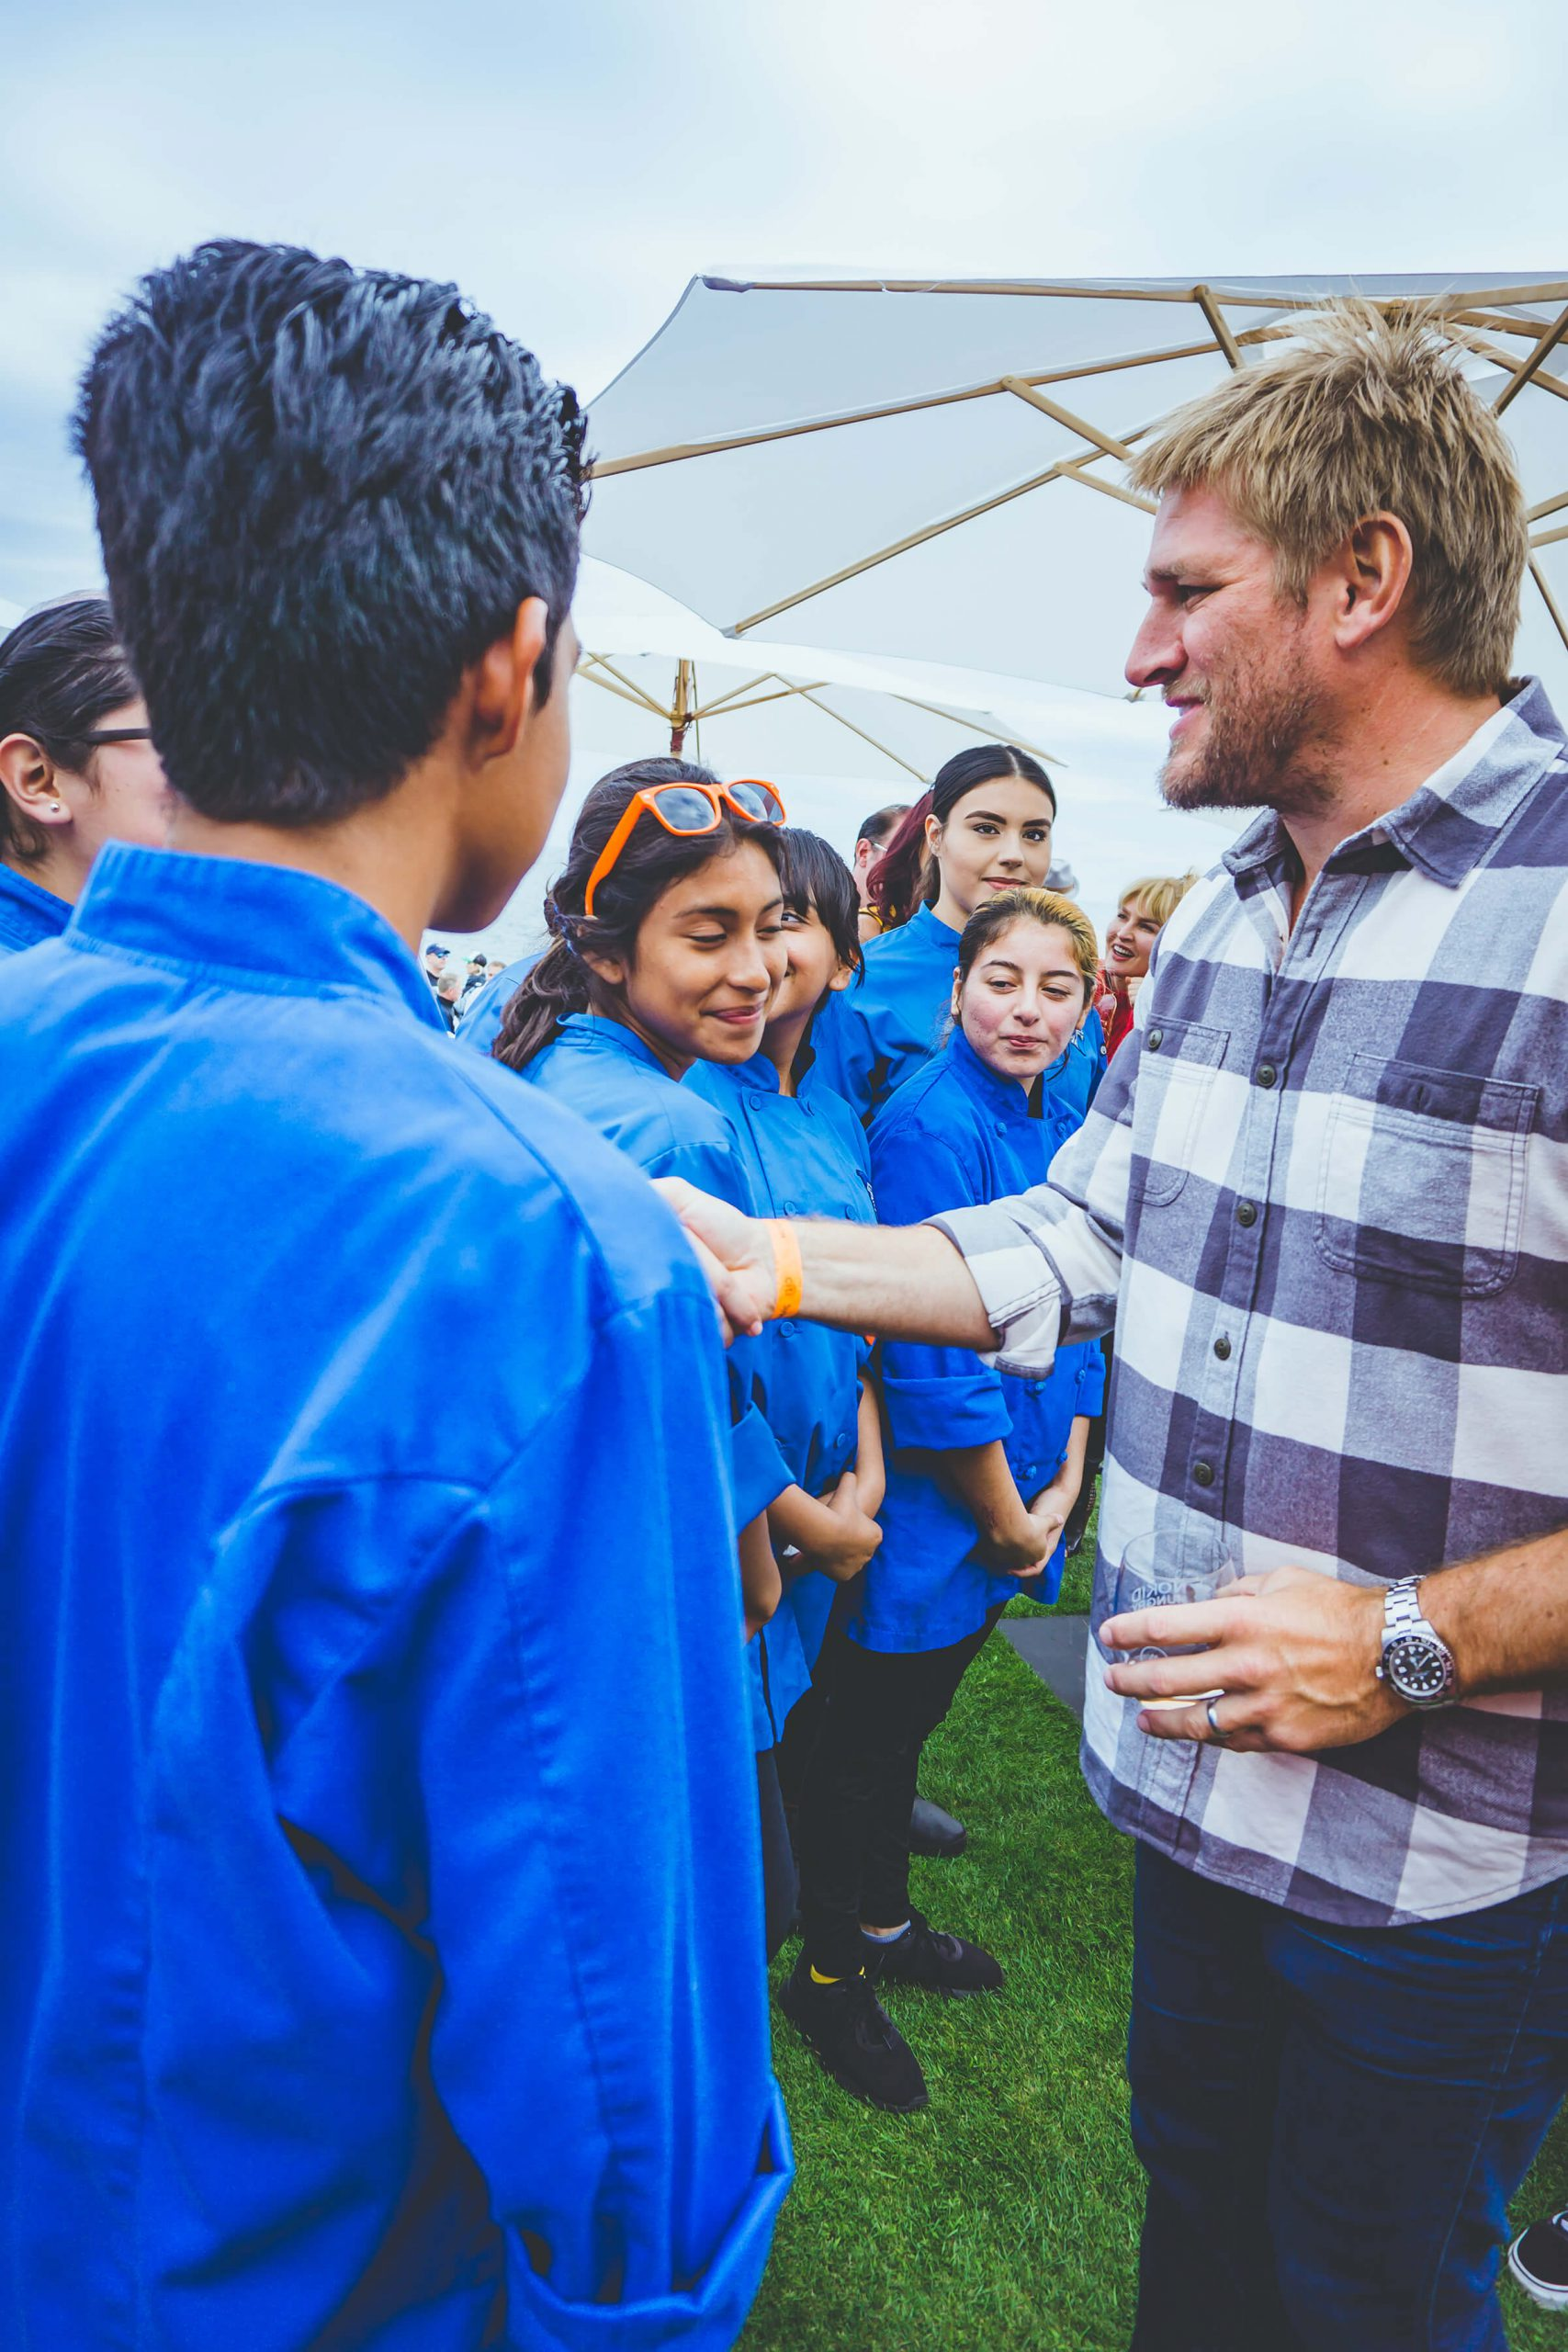 Professional chef Curtis Stone greets a line of aspiring young chefs at an outdoor function.